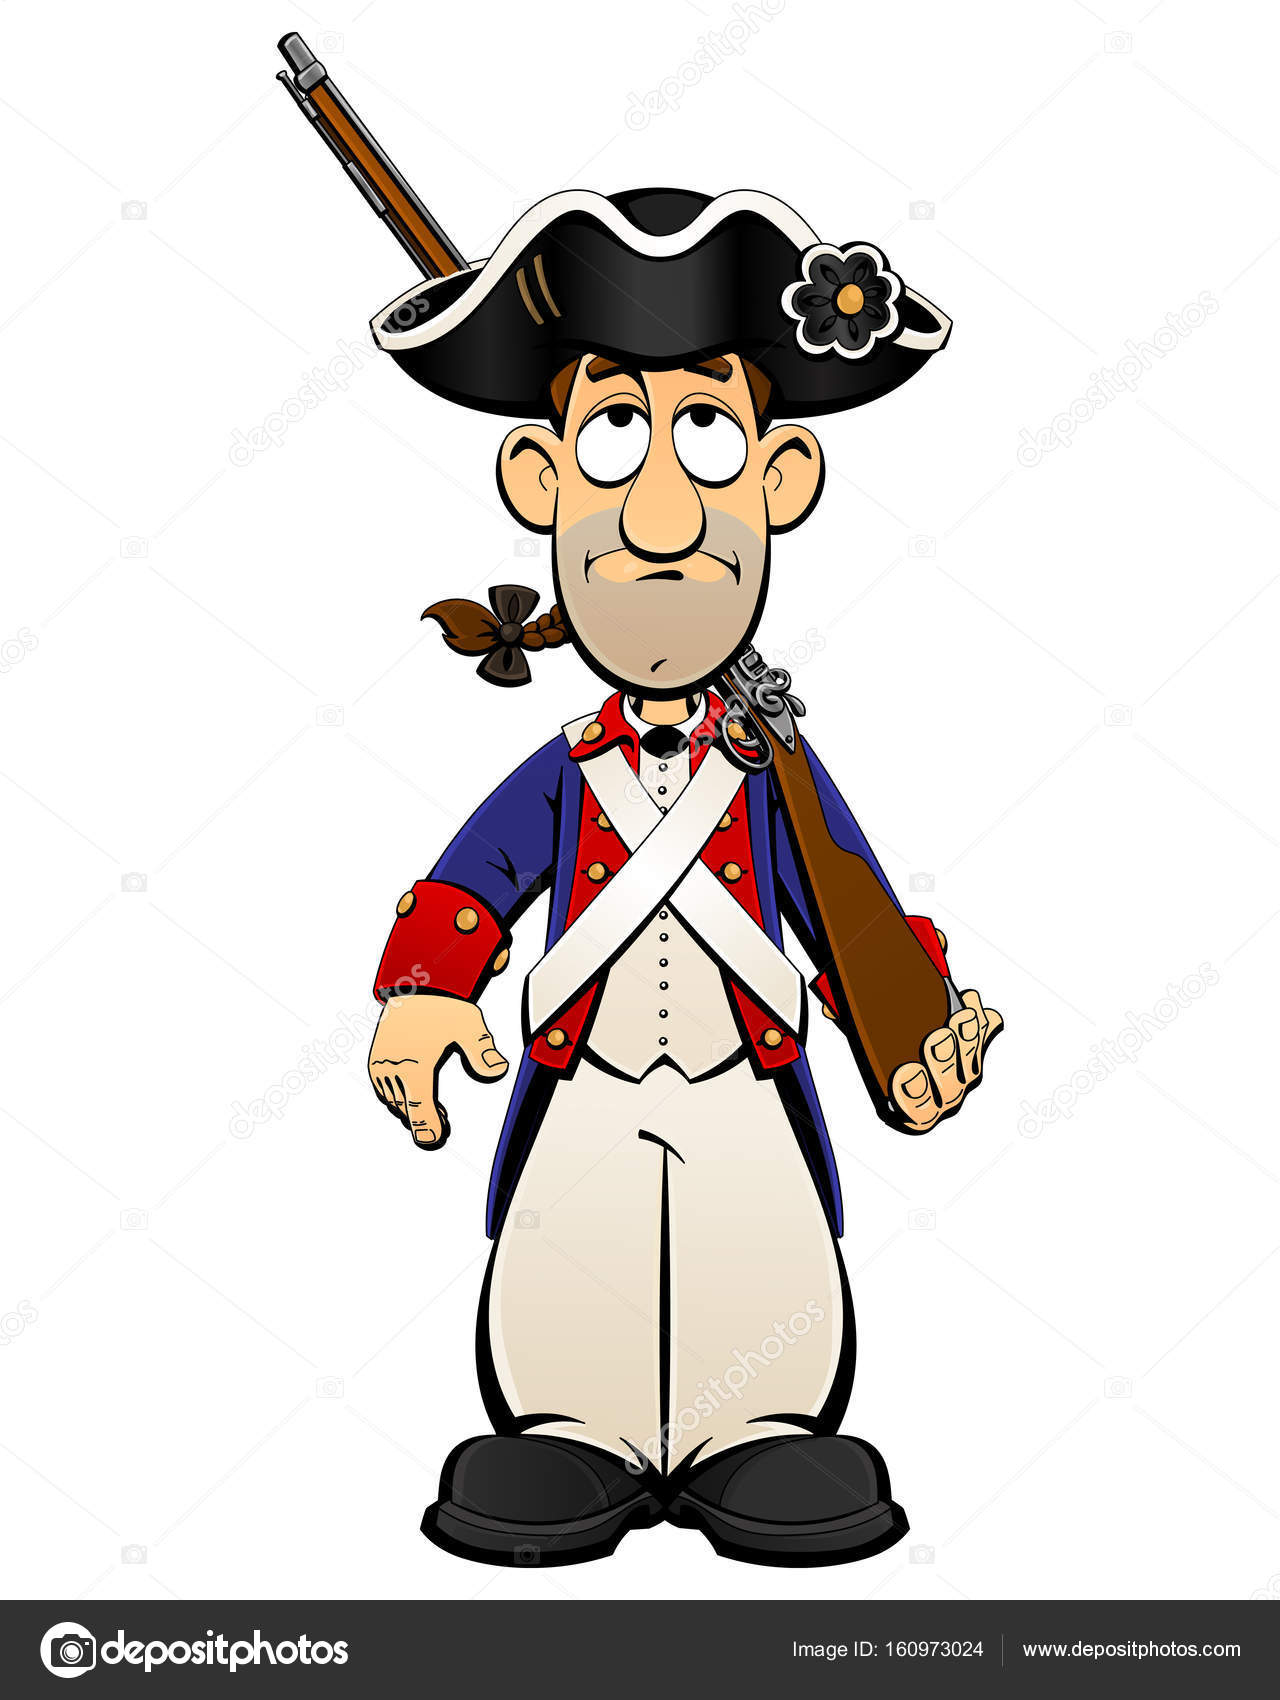 Musket Clipart